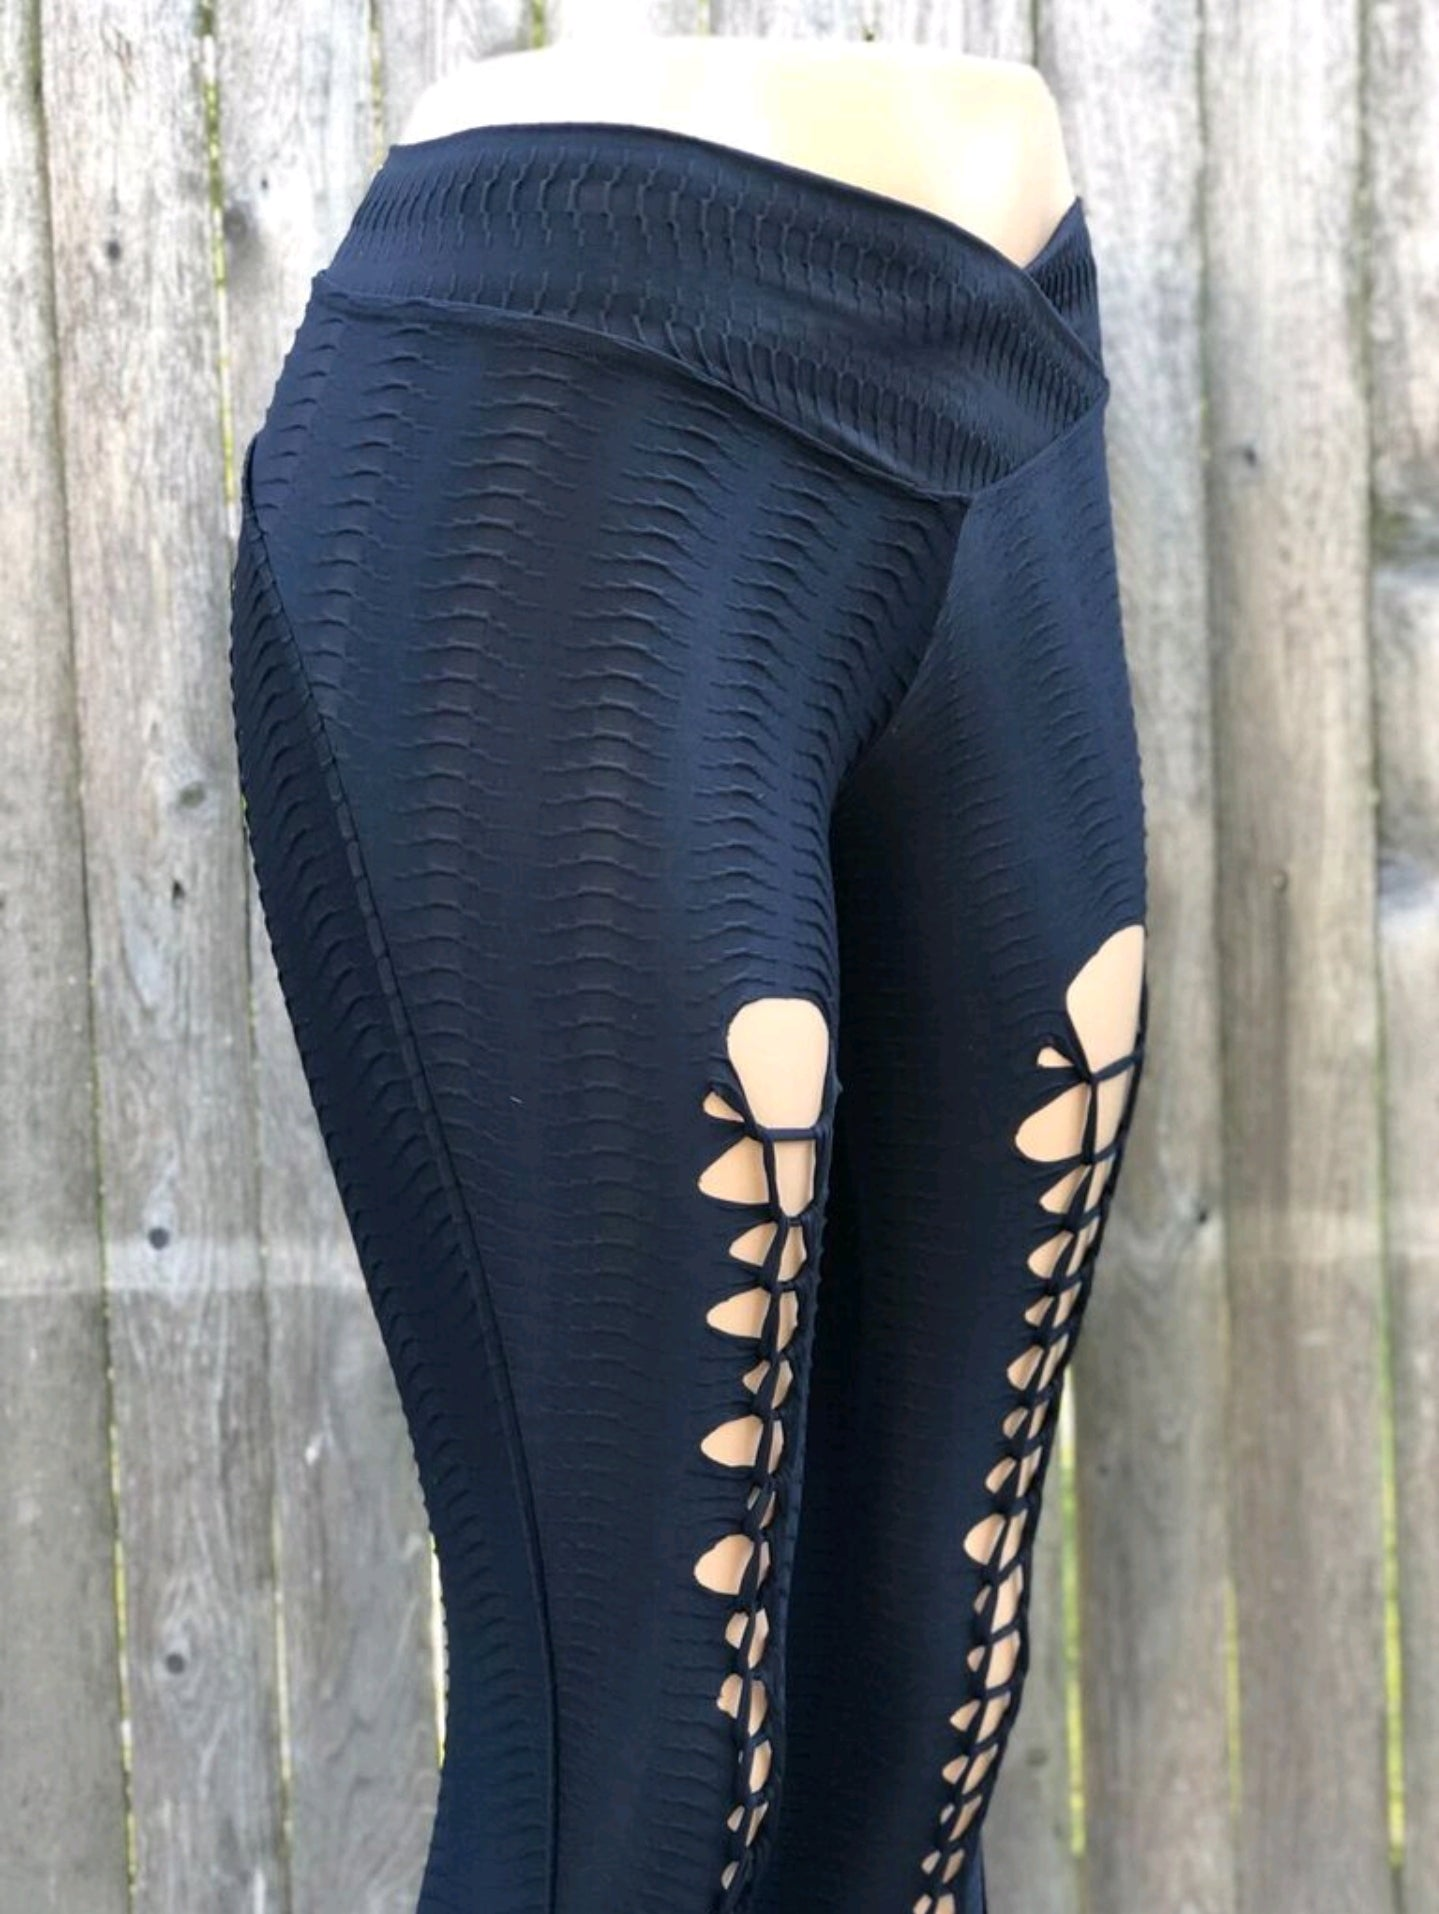 PYTHON BLACK V SLICE-NYLeggings.com